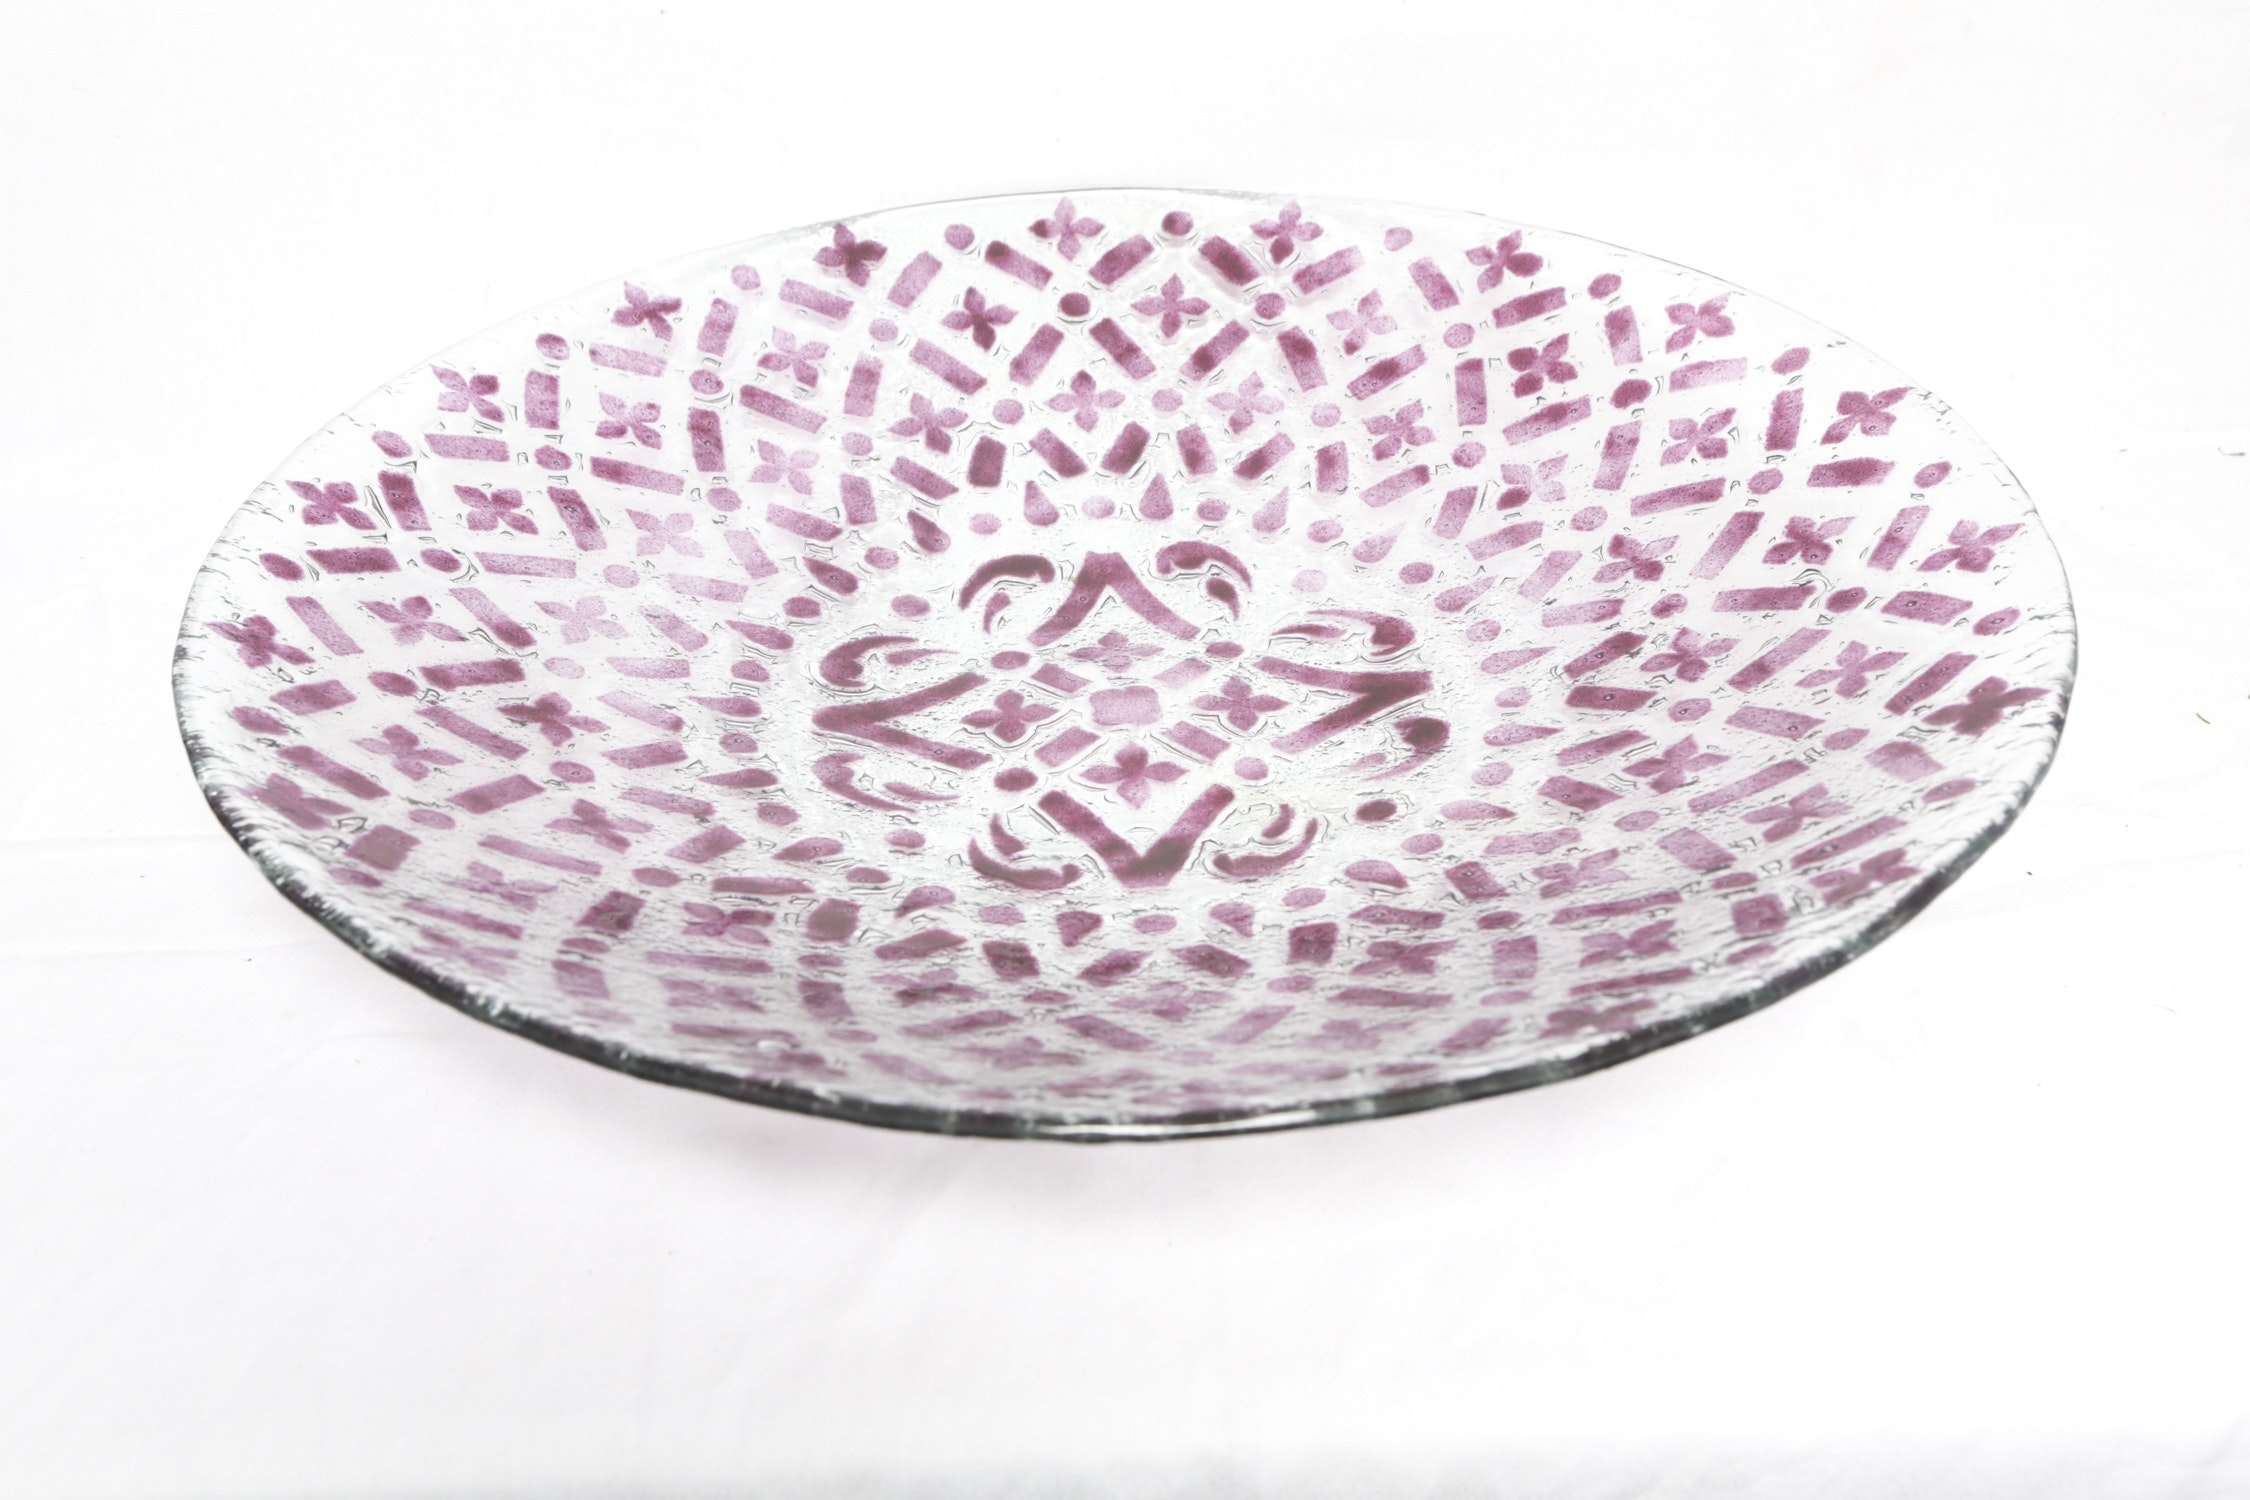 Artificial Floral Arrangments with Patterned Glass Dish